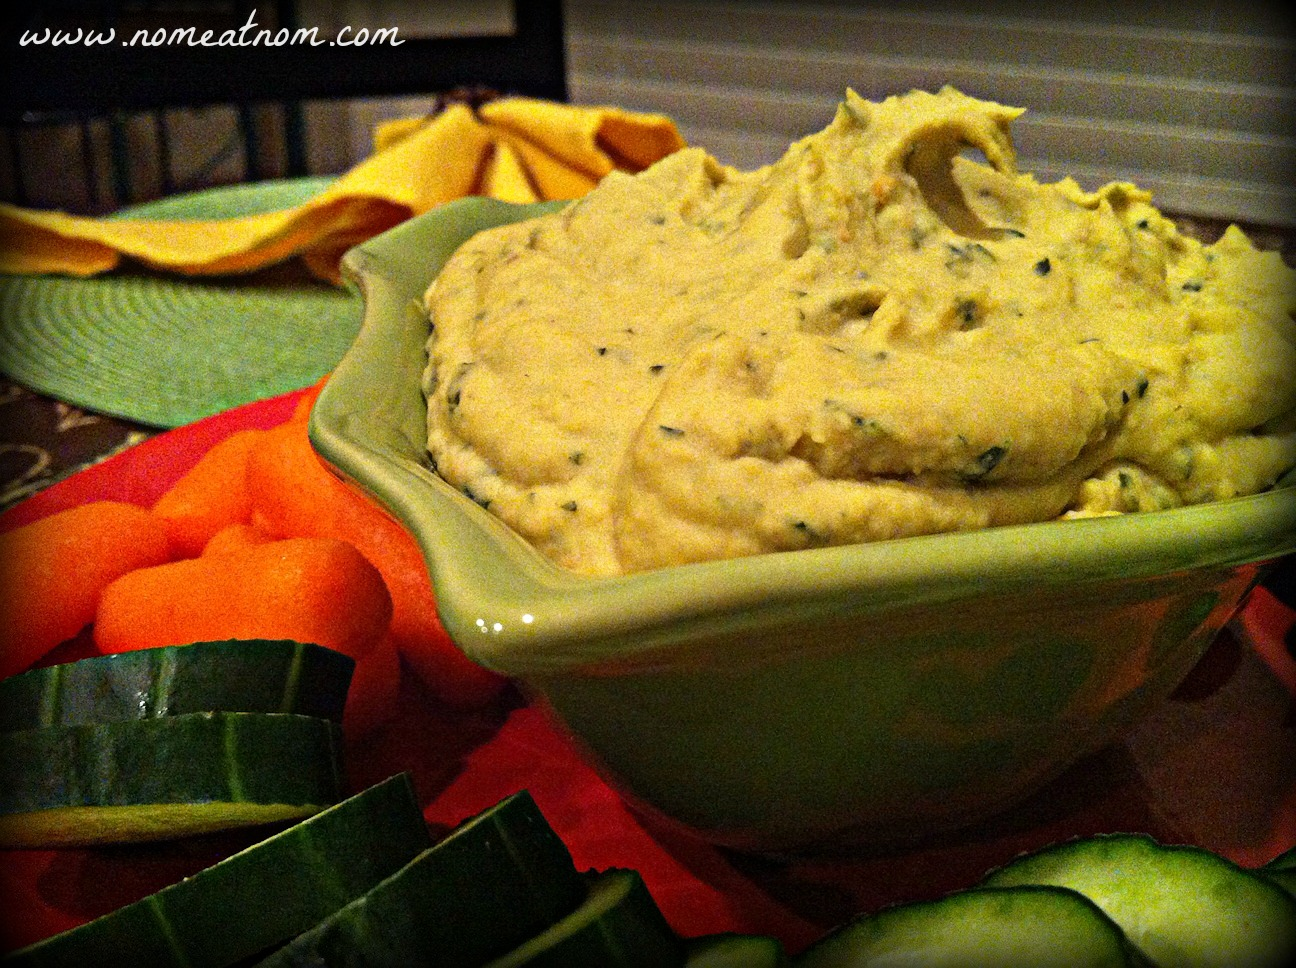 Red Lentil Basil Hummus close up with Effects